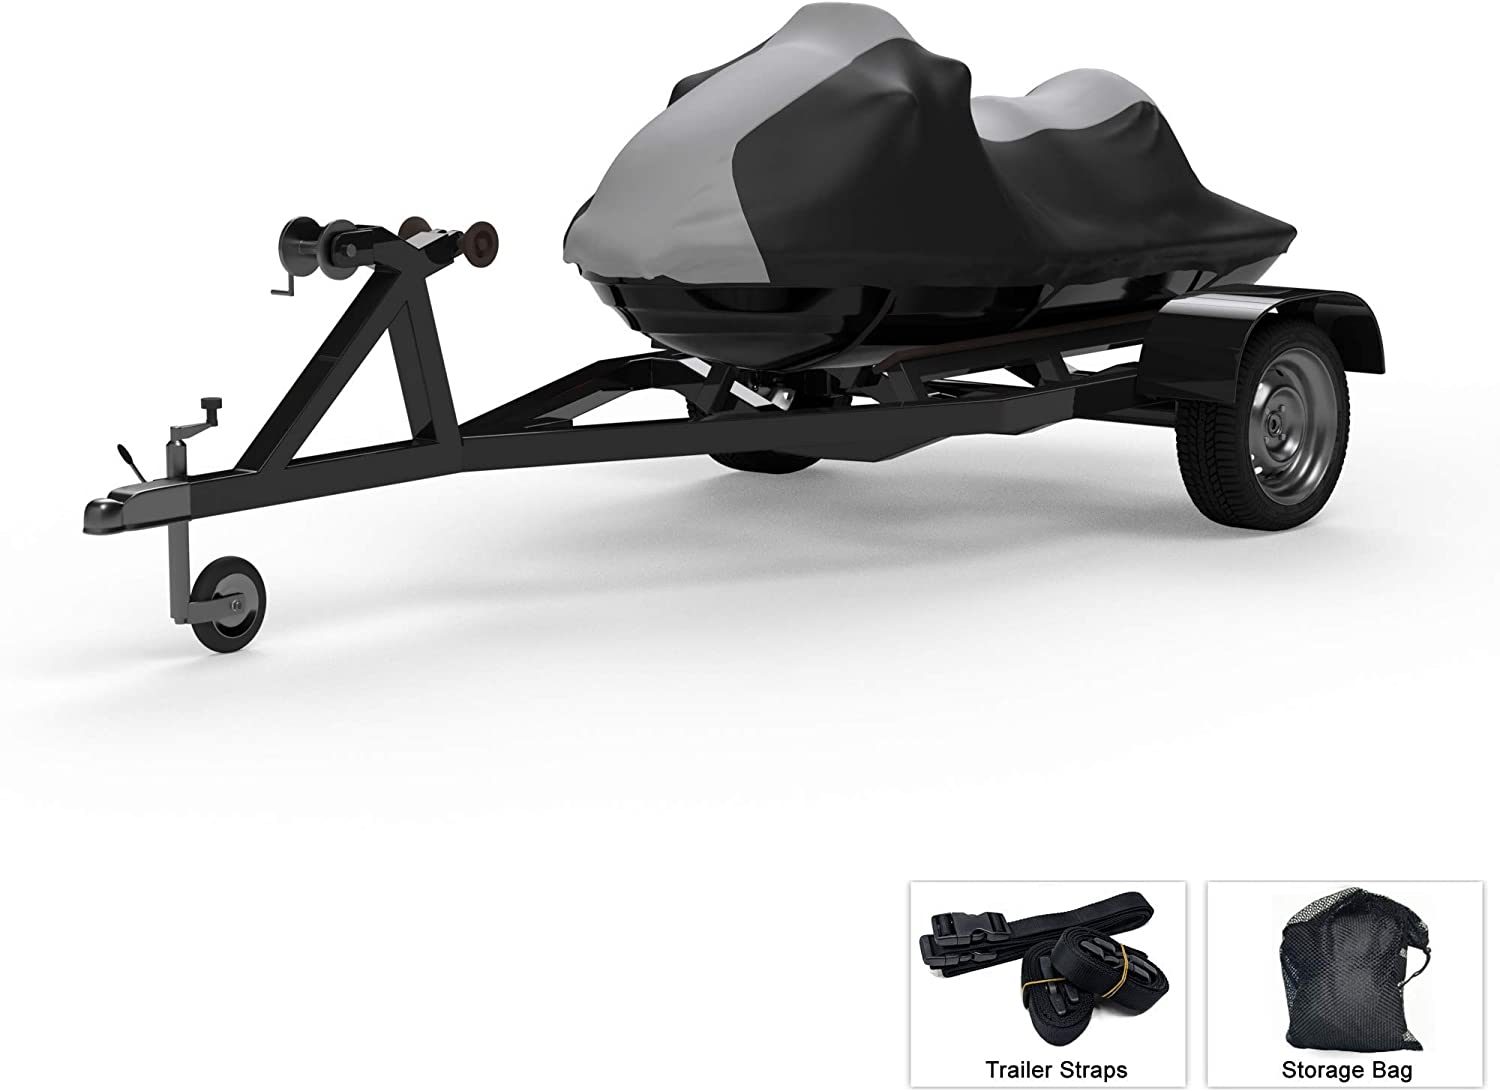 Weatherproof Jet Ski wholesale Cover Compatible with Spark Outlet sale feature TR Sea Doo 2021